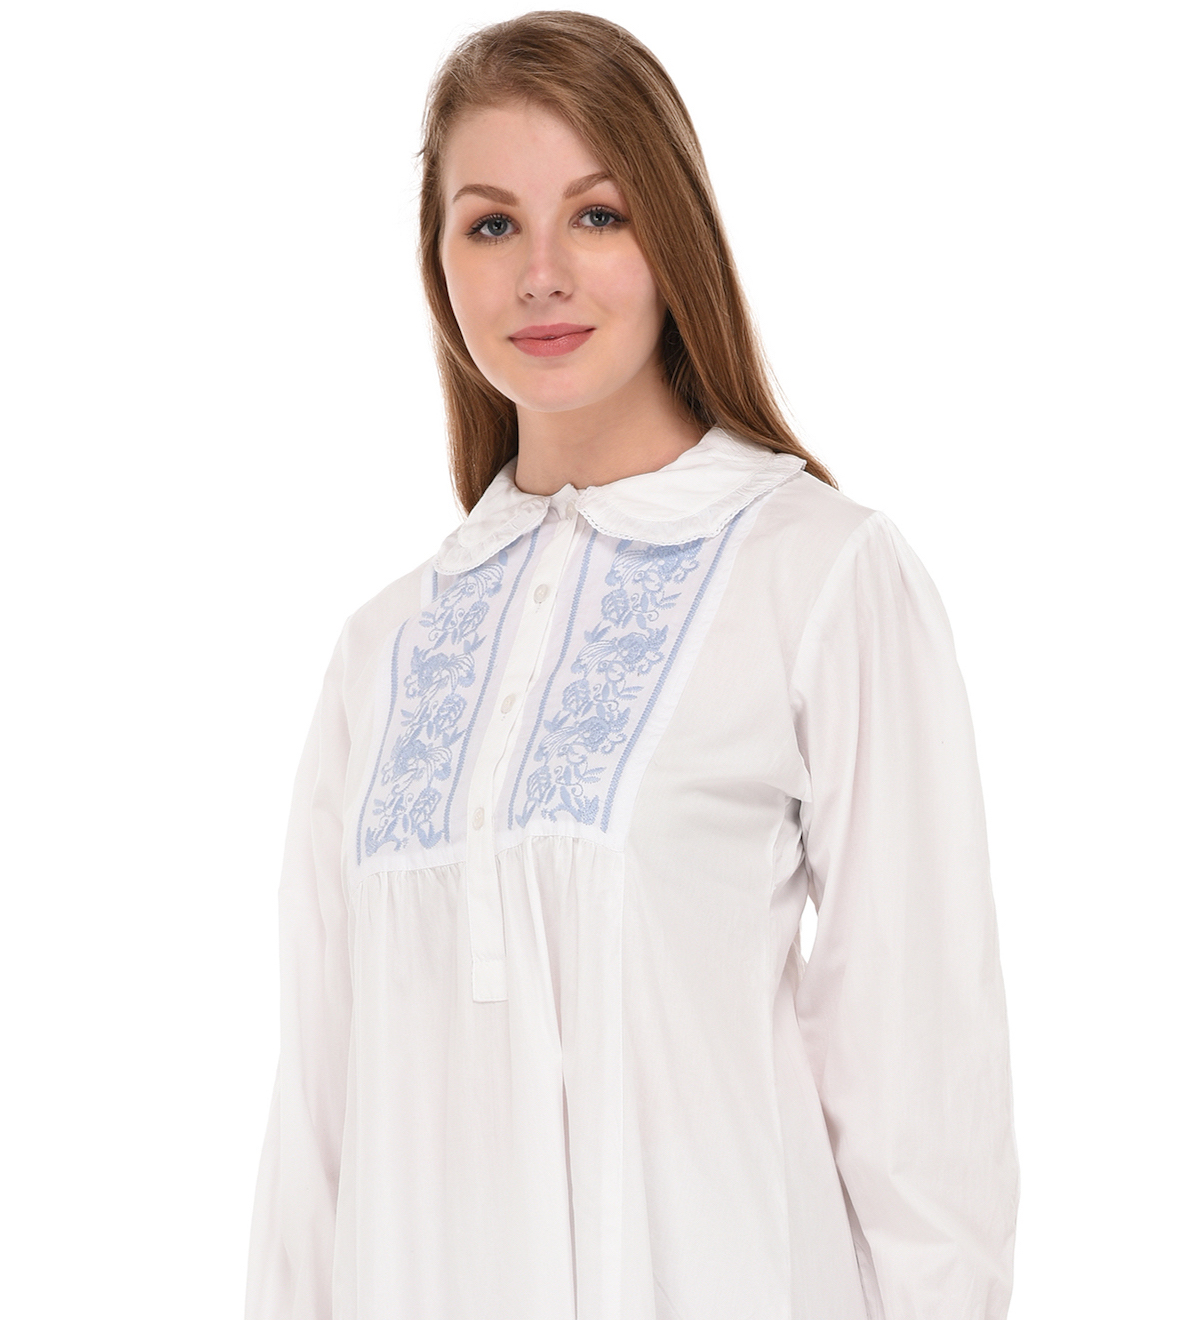 d431ea0869 Peter Pan Collar Long Sleeve White Long Nightdress | Cotton Lane ...